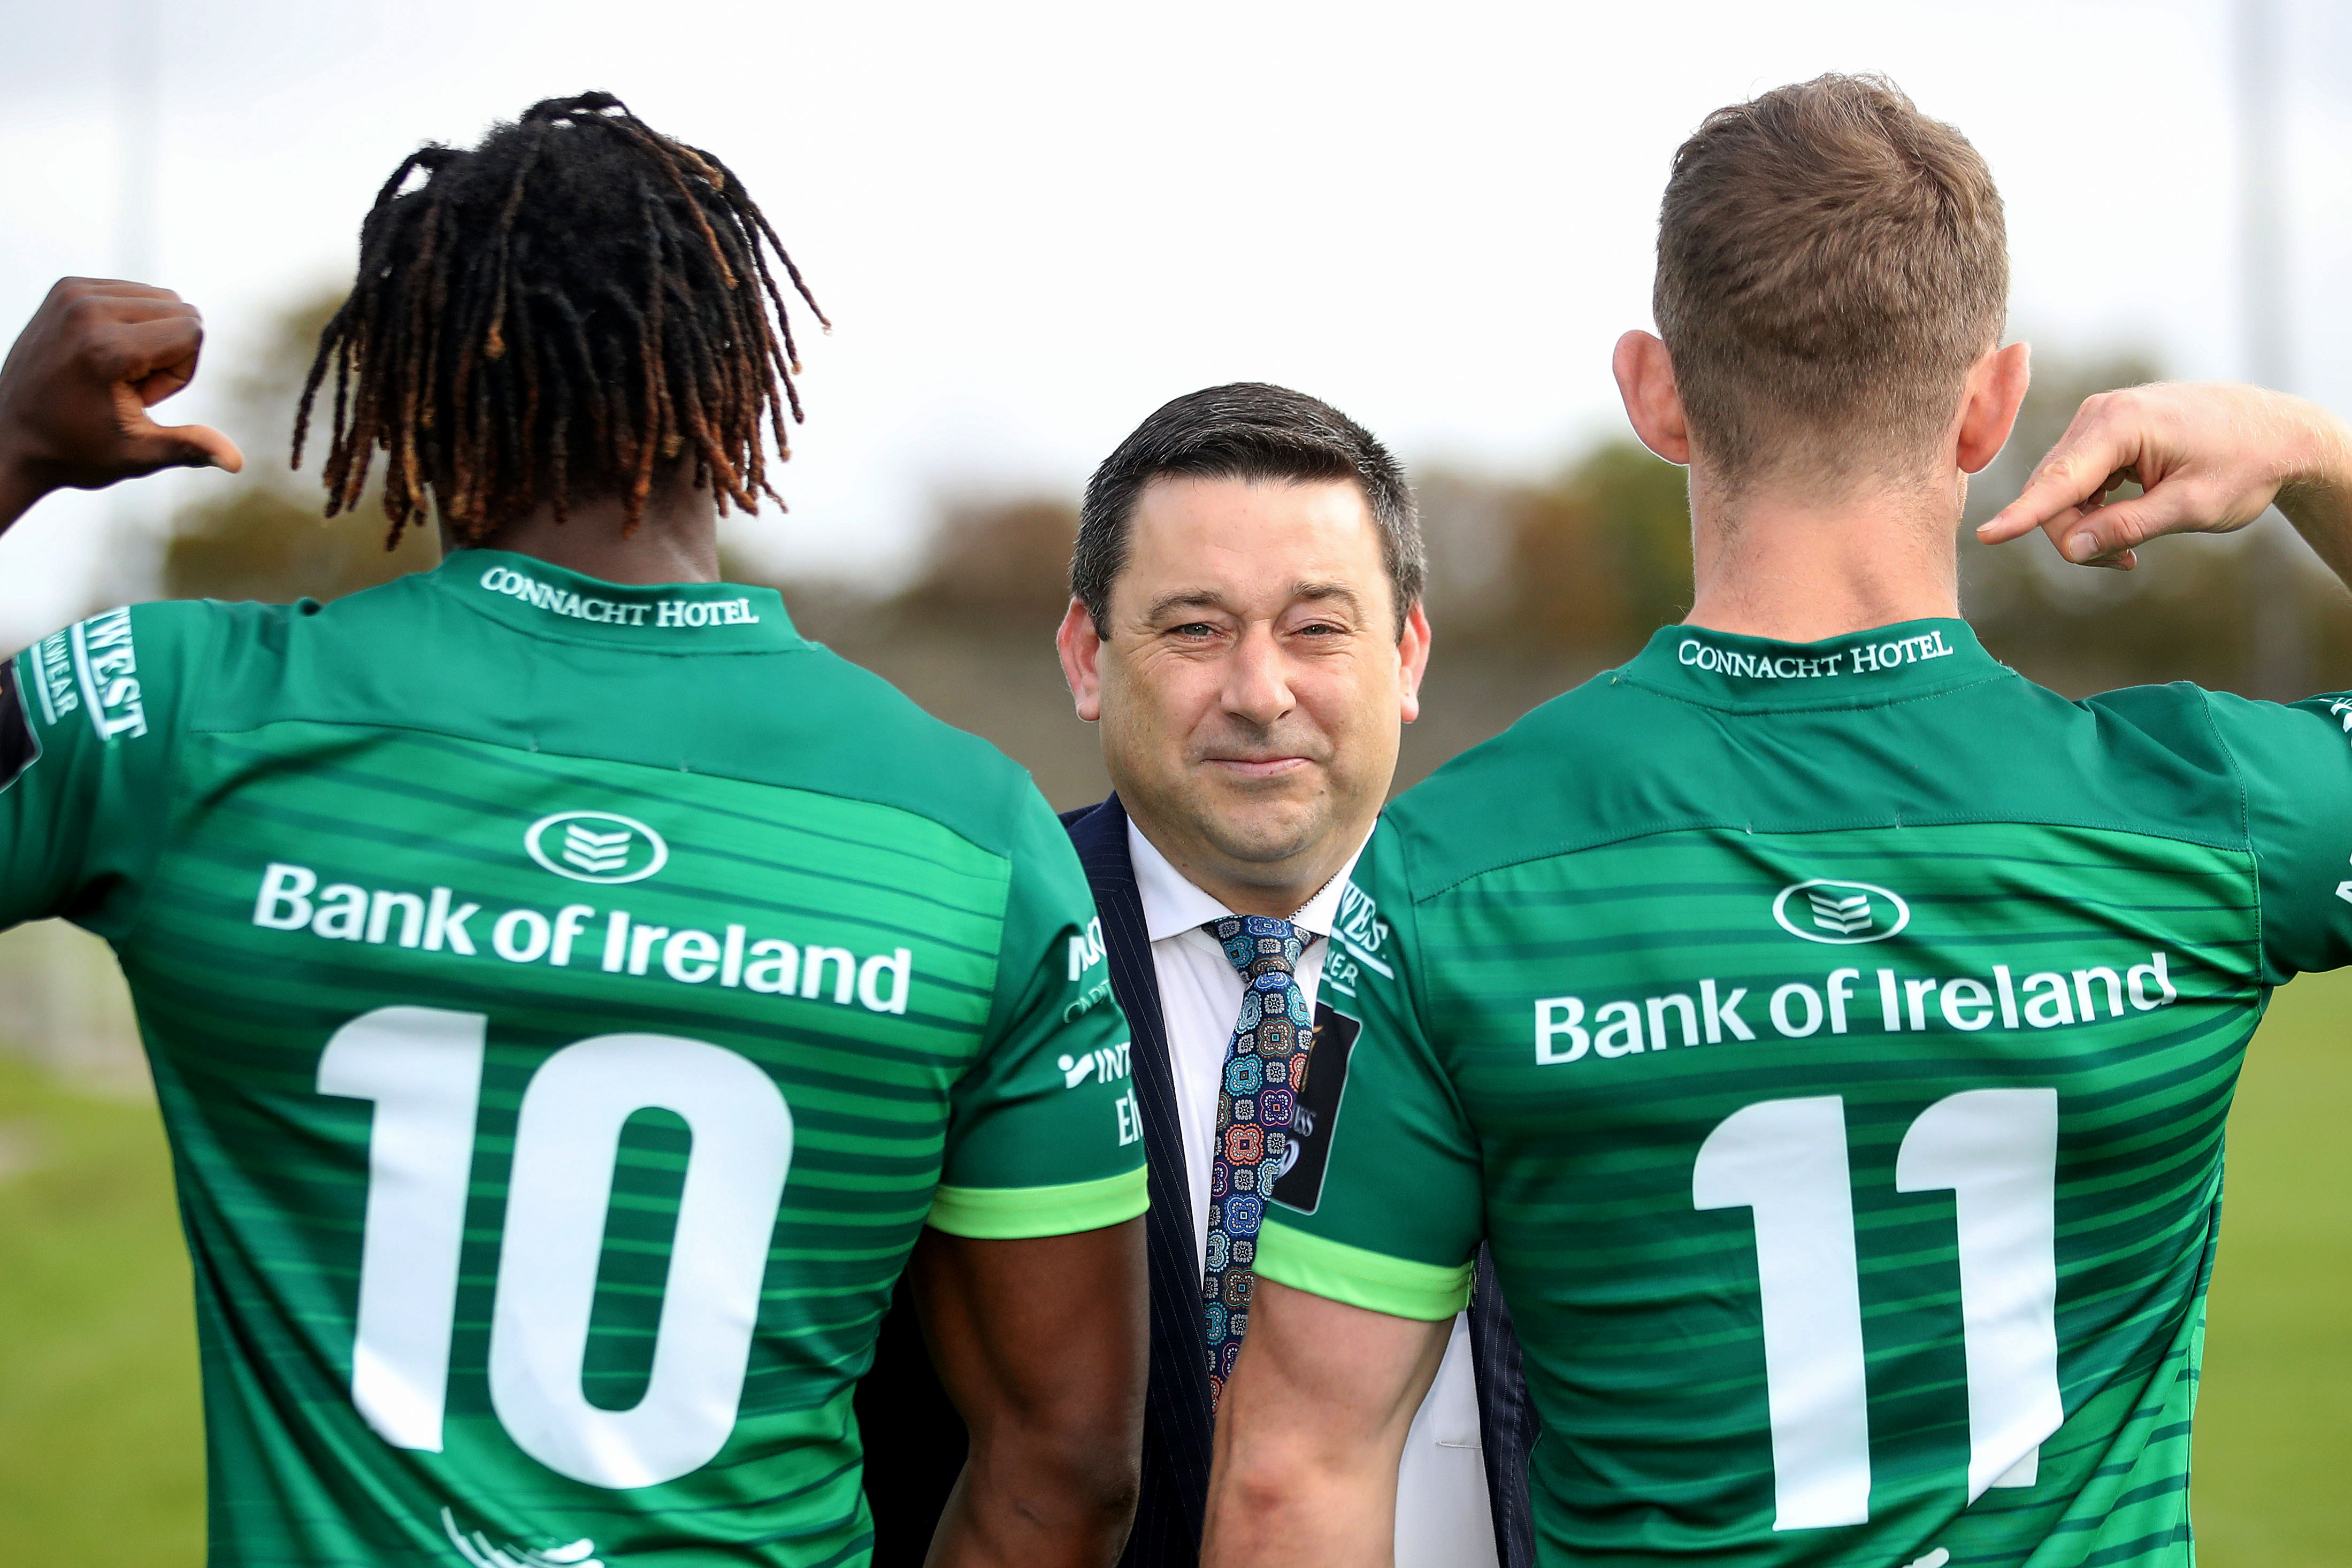 Connacht Rugby and the Connacht Hotel – a partnership made in rugby heaven